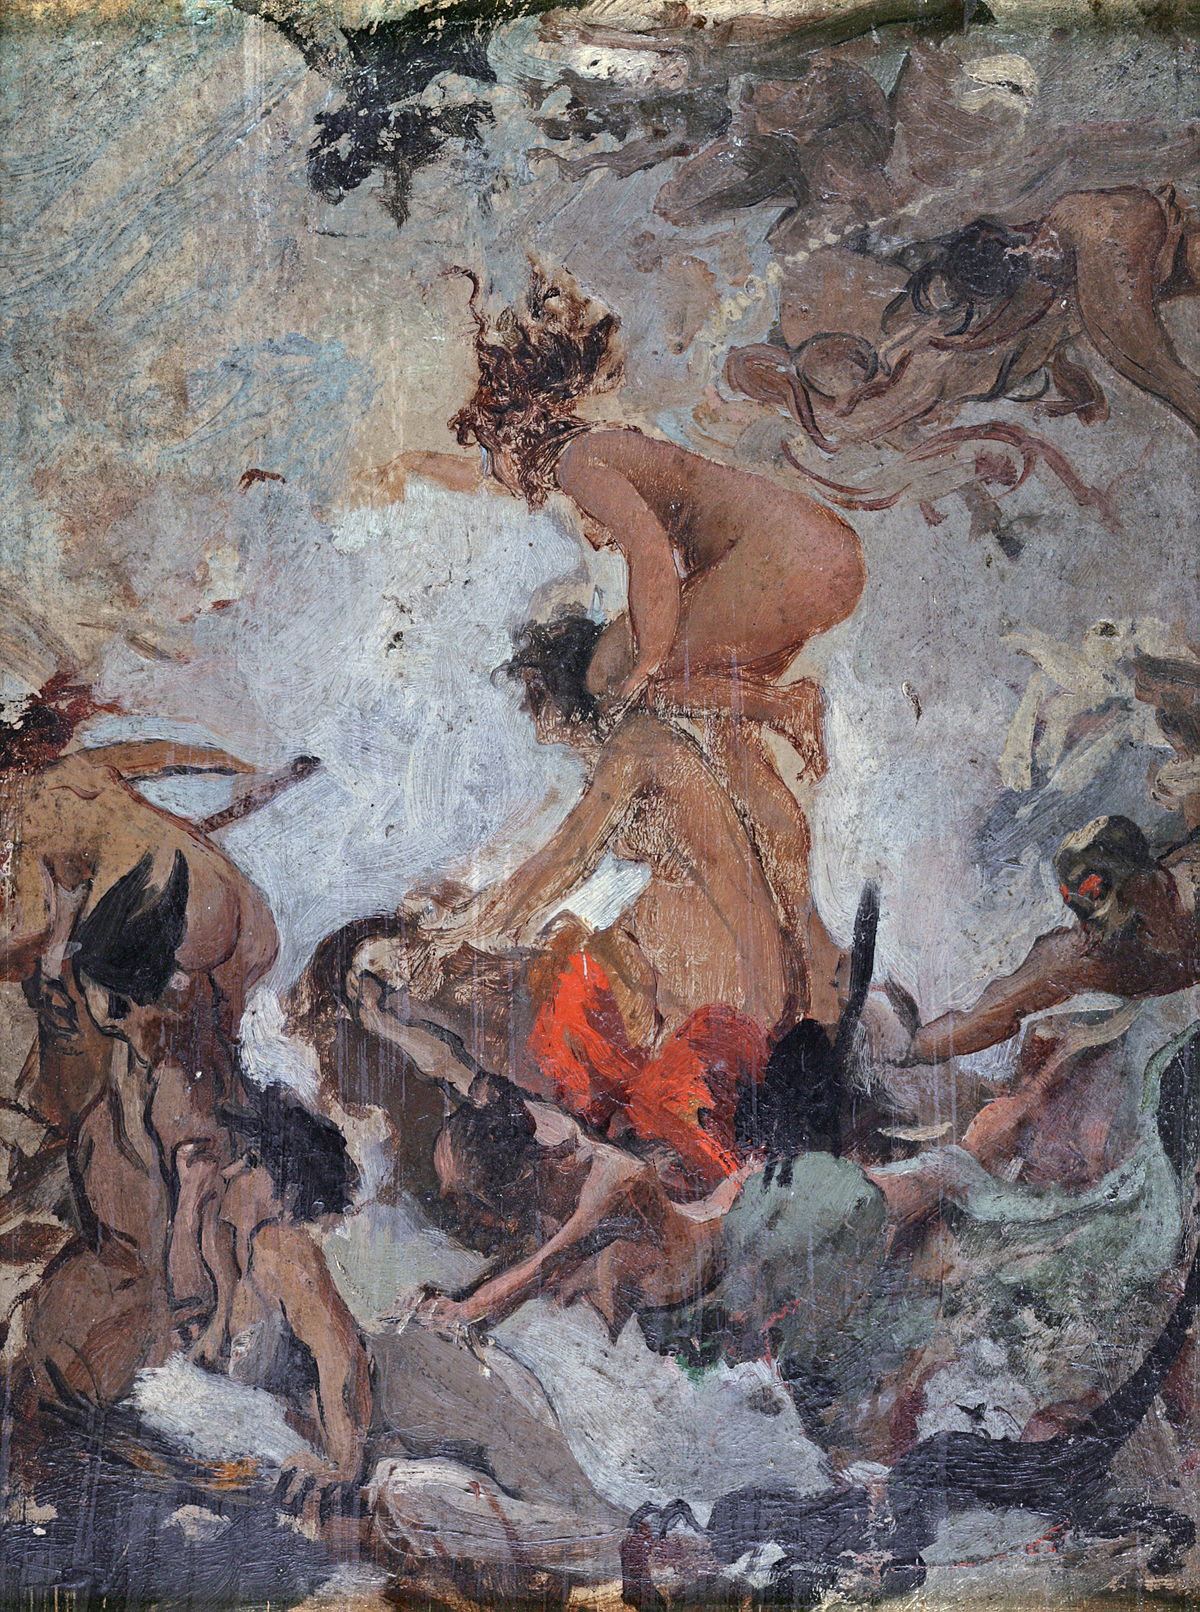 http://upload.wikimedia.org/wikipedia/commons/thumb/5/5a/Study_of_Witches_going_to_their_Sabbath%2C_by_Luis_Ricardo_Falero.jpg/1200px-Study_of_Witches_going_to_their_Sabbath%2C_by_Luis_Ricardo_Falero.jpg